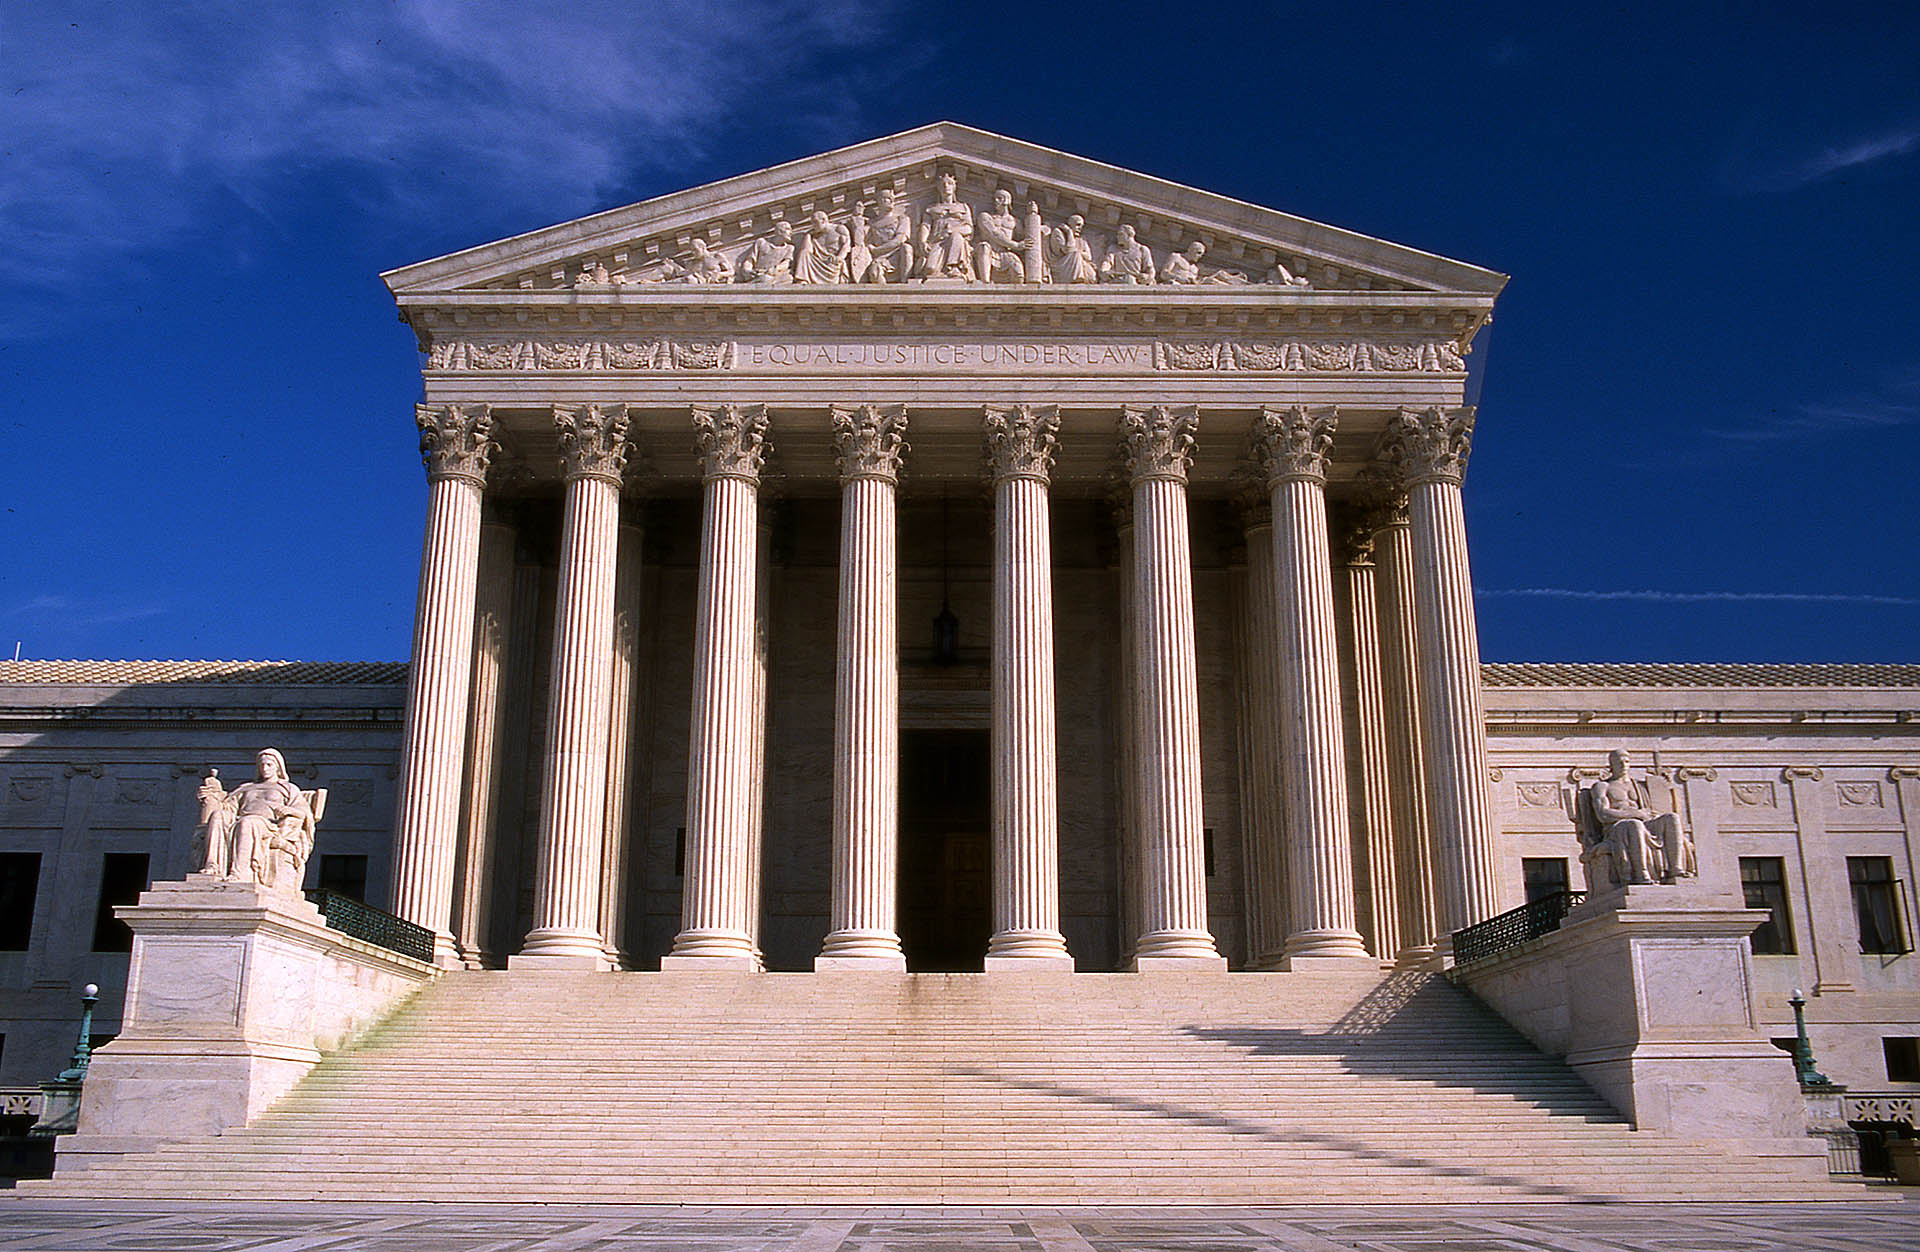 The Supreme Court Building - The Supreme Court of the United States of America